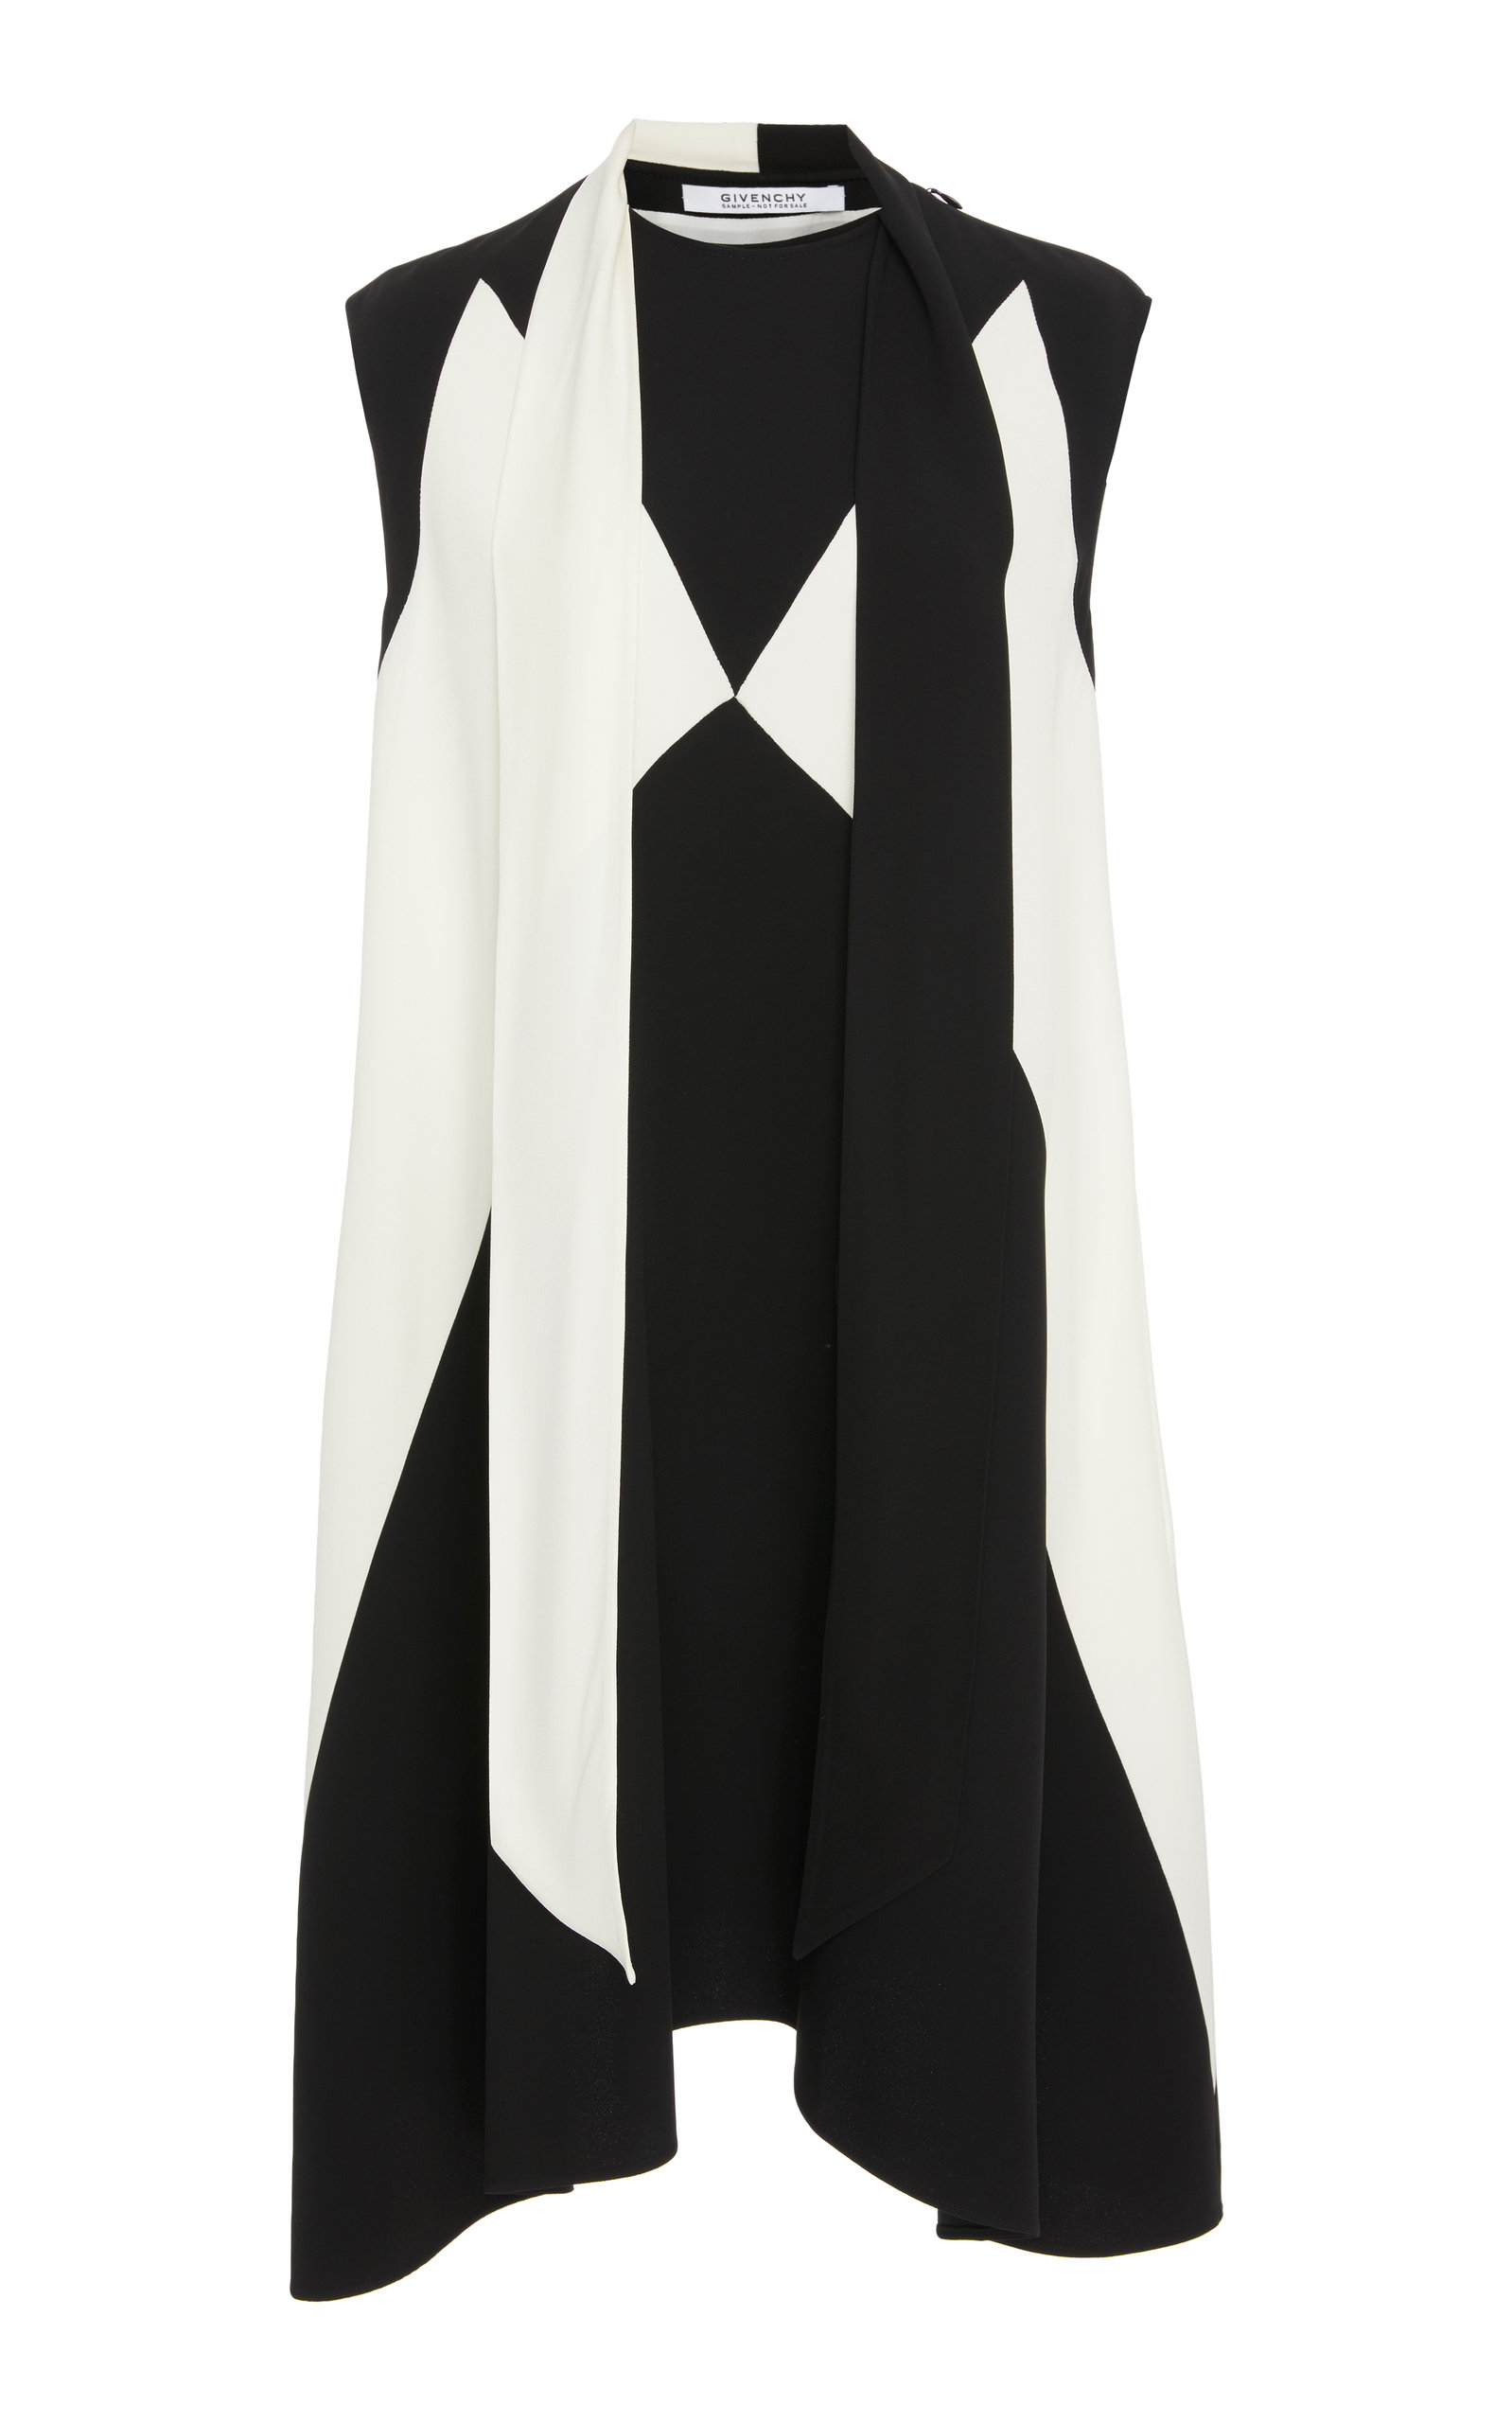 GIVENCHY Sleeveless Graphic-Print Short Dress W/ Scarf Detail, Black/White